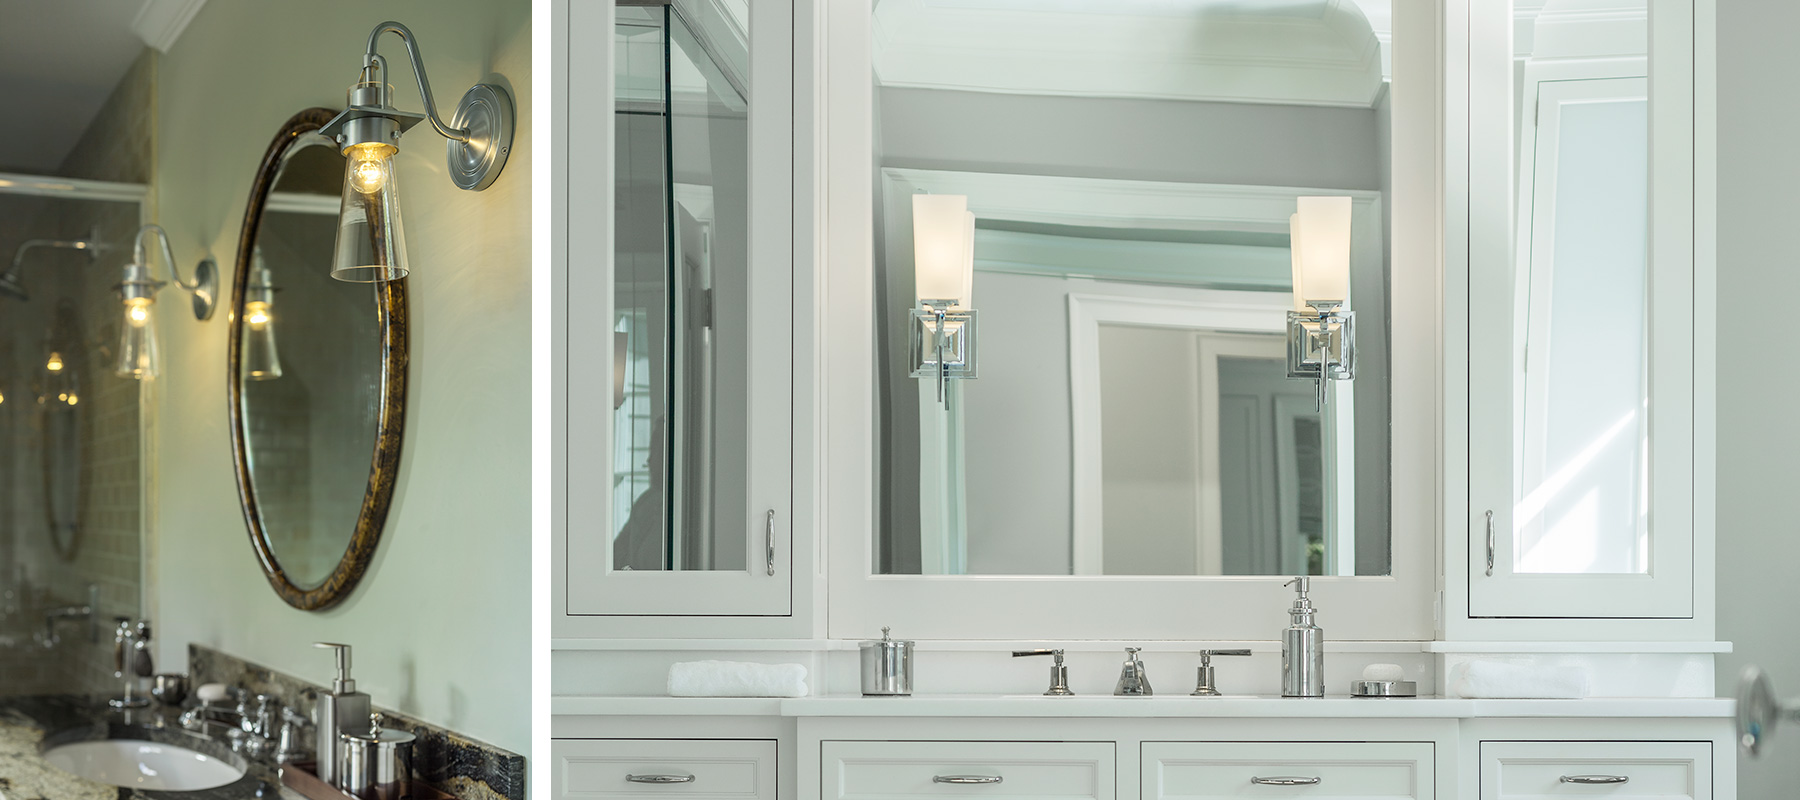 Hubbardton Forge Reflections- bath sconces